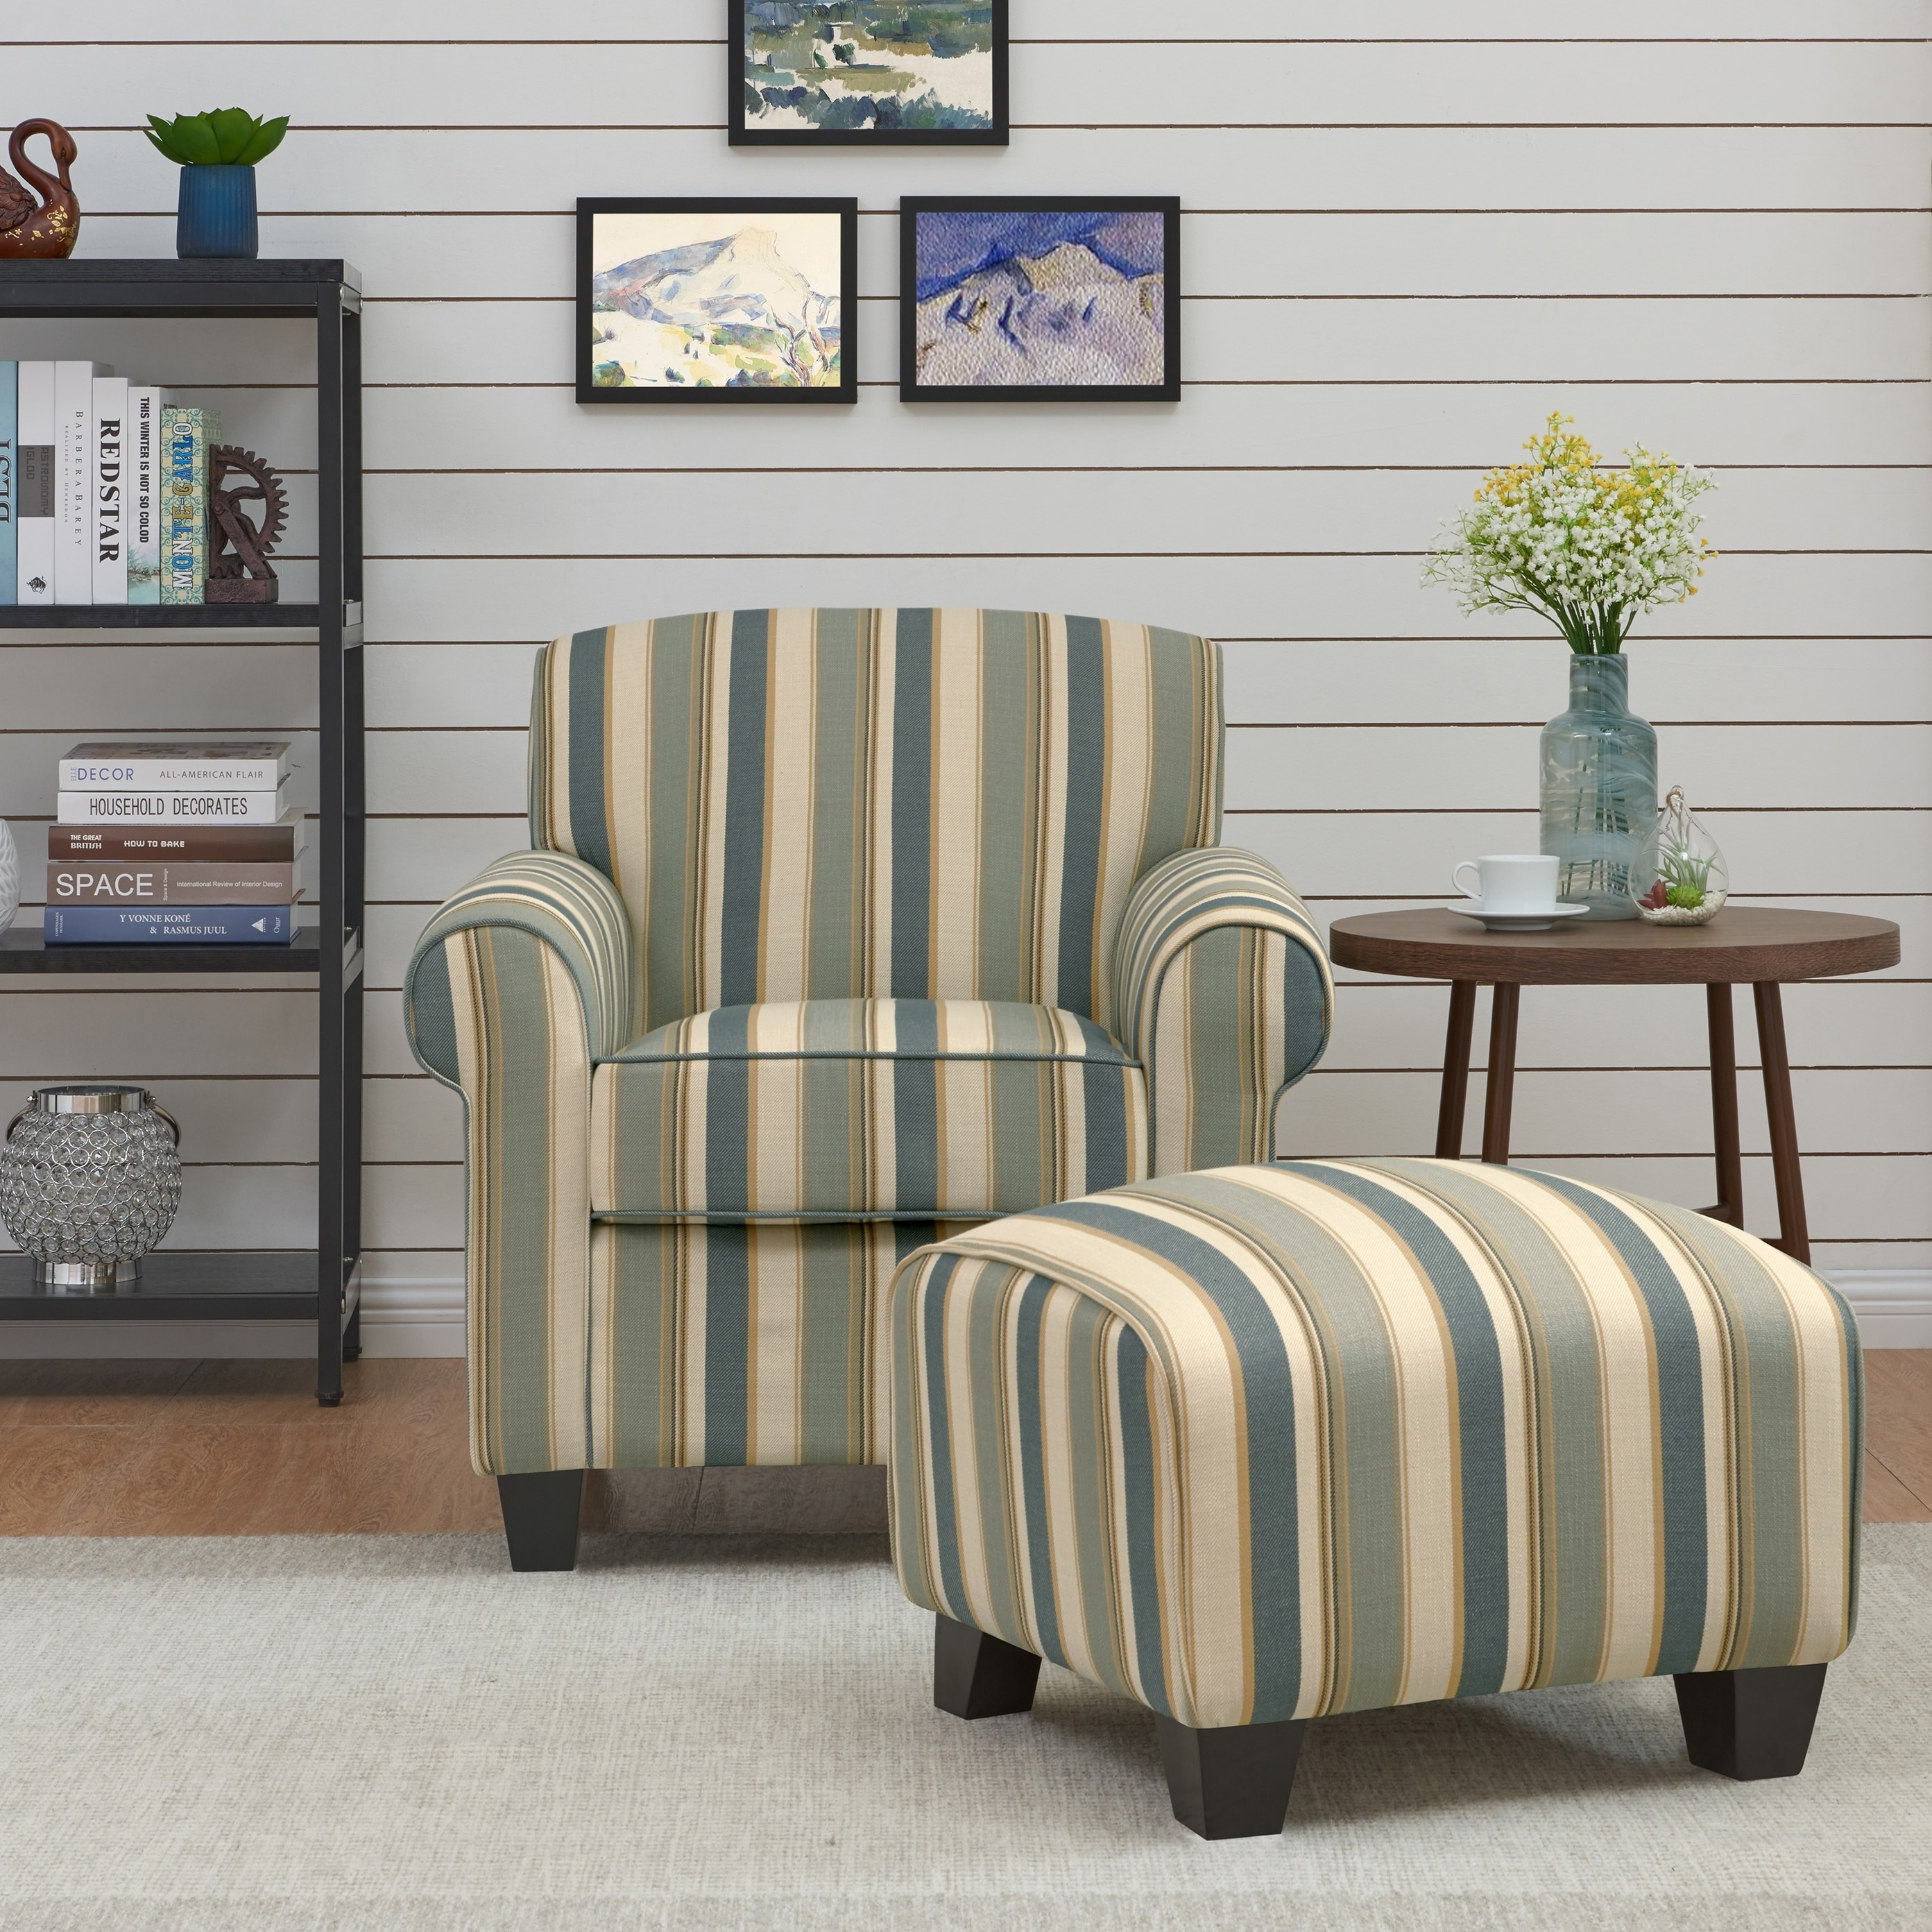 Chair U0026 Ottoman Sets Living Room Furniture | Find Great Furniture Deals  Shopping At Overstock.com